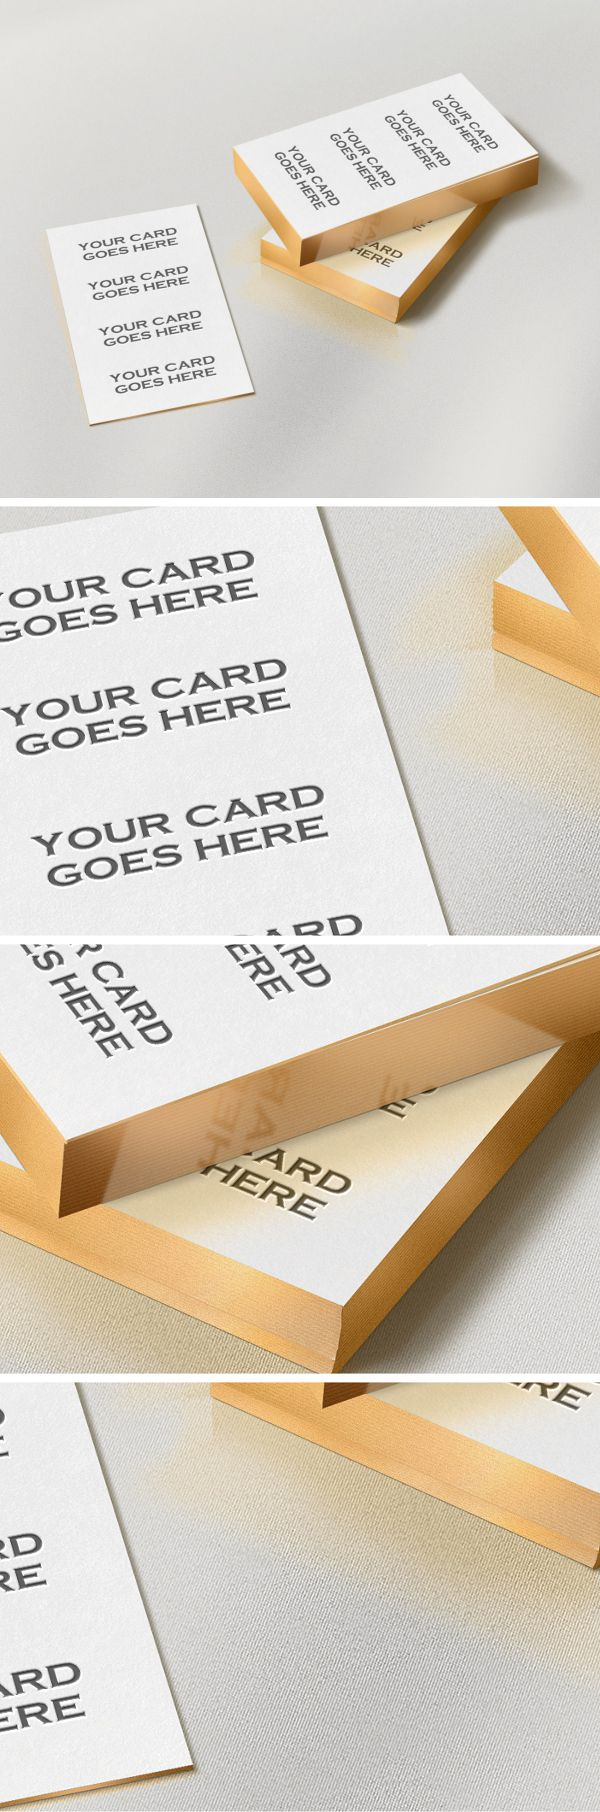 38 best business card images on pinterest miniatures mockup and